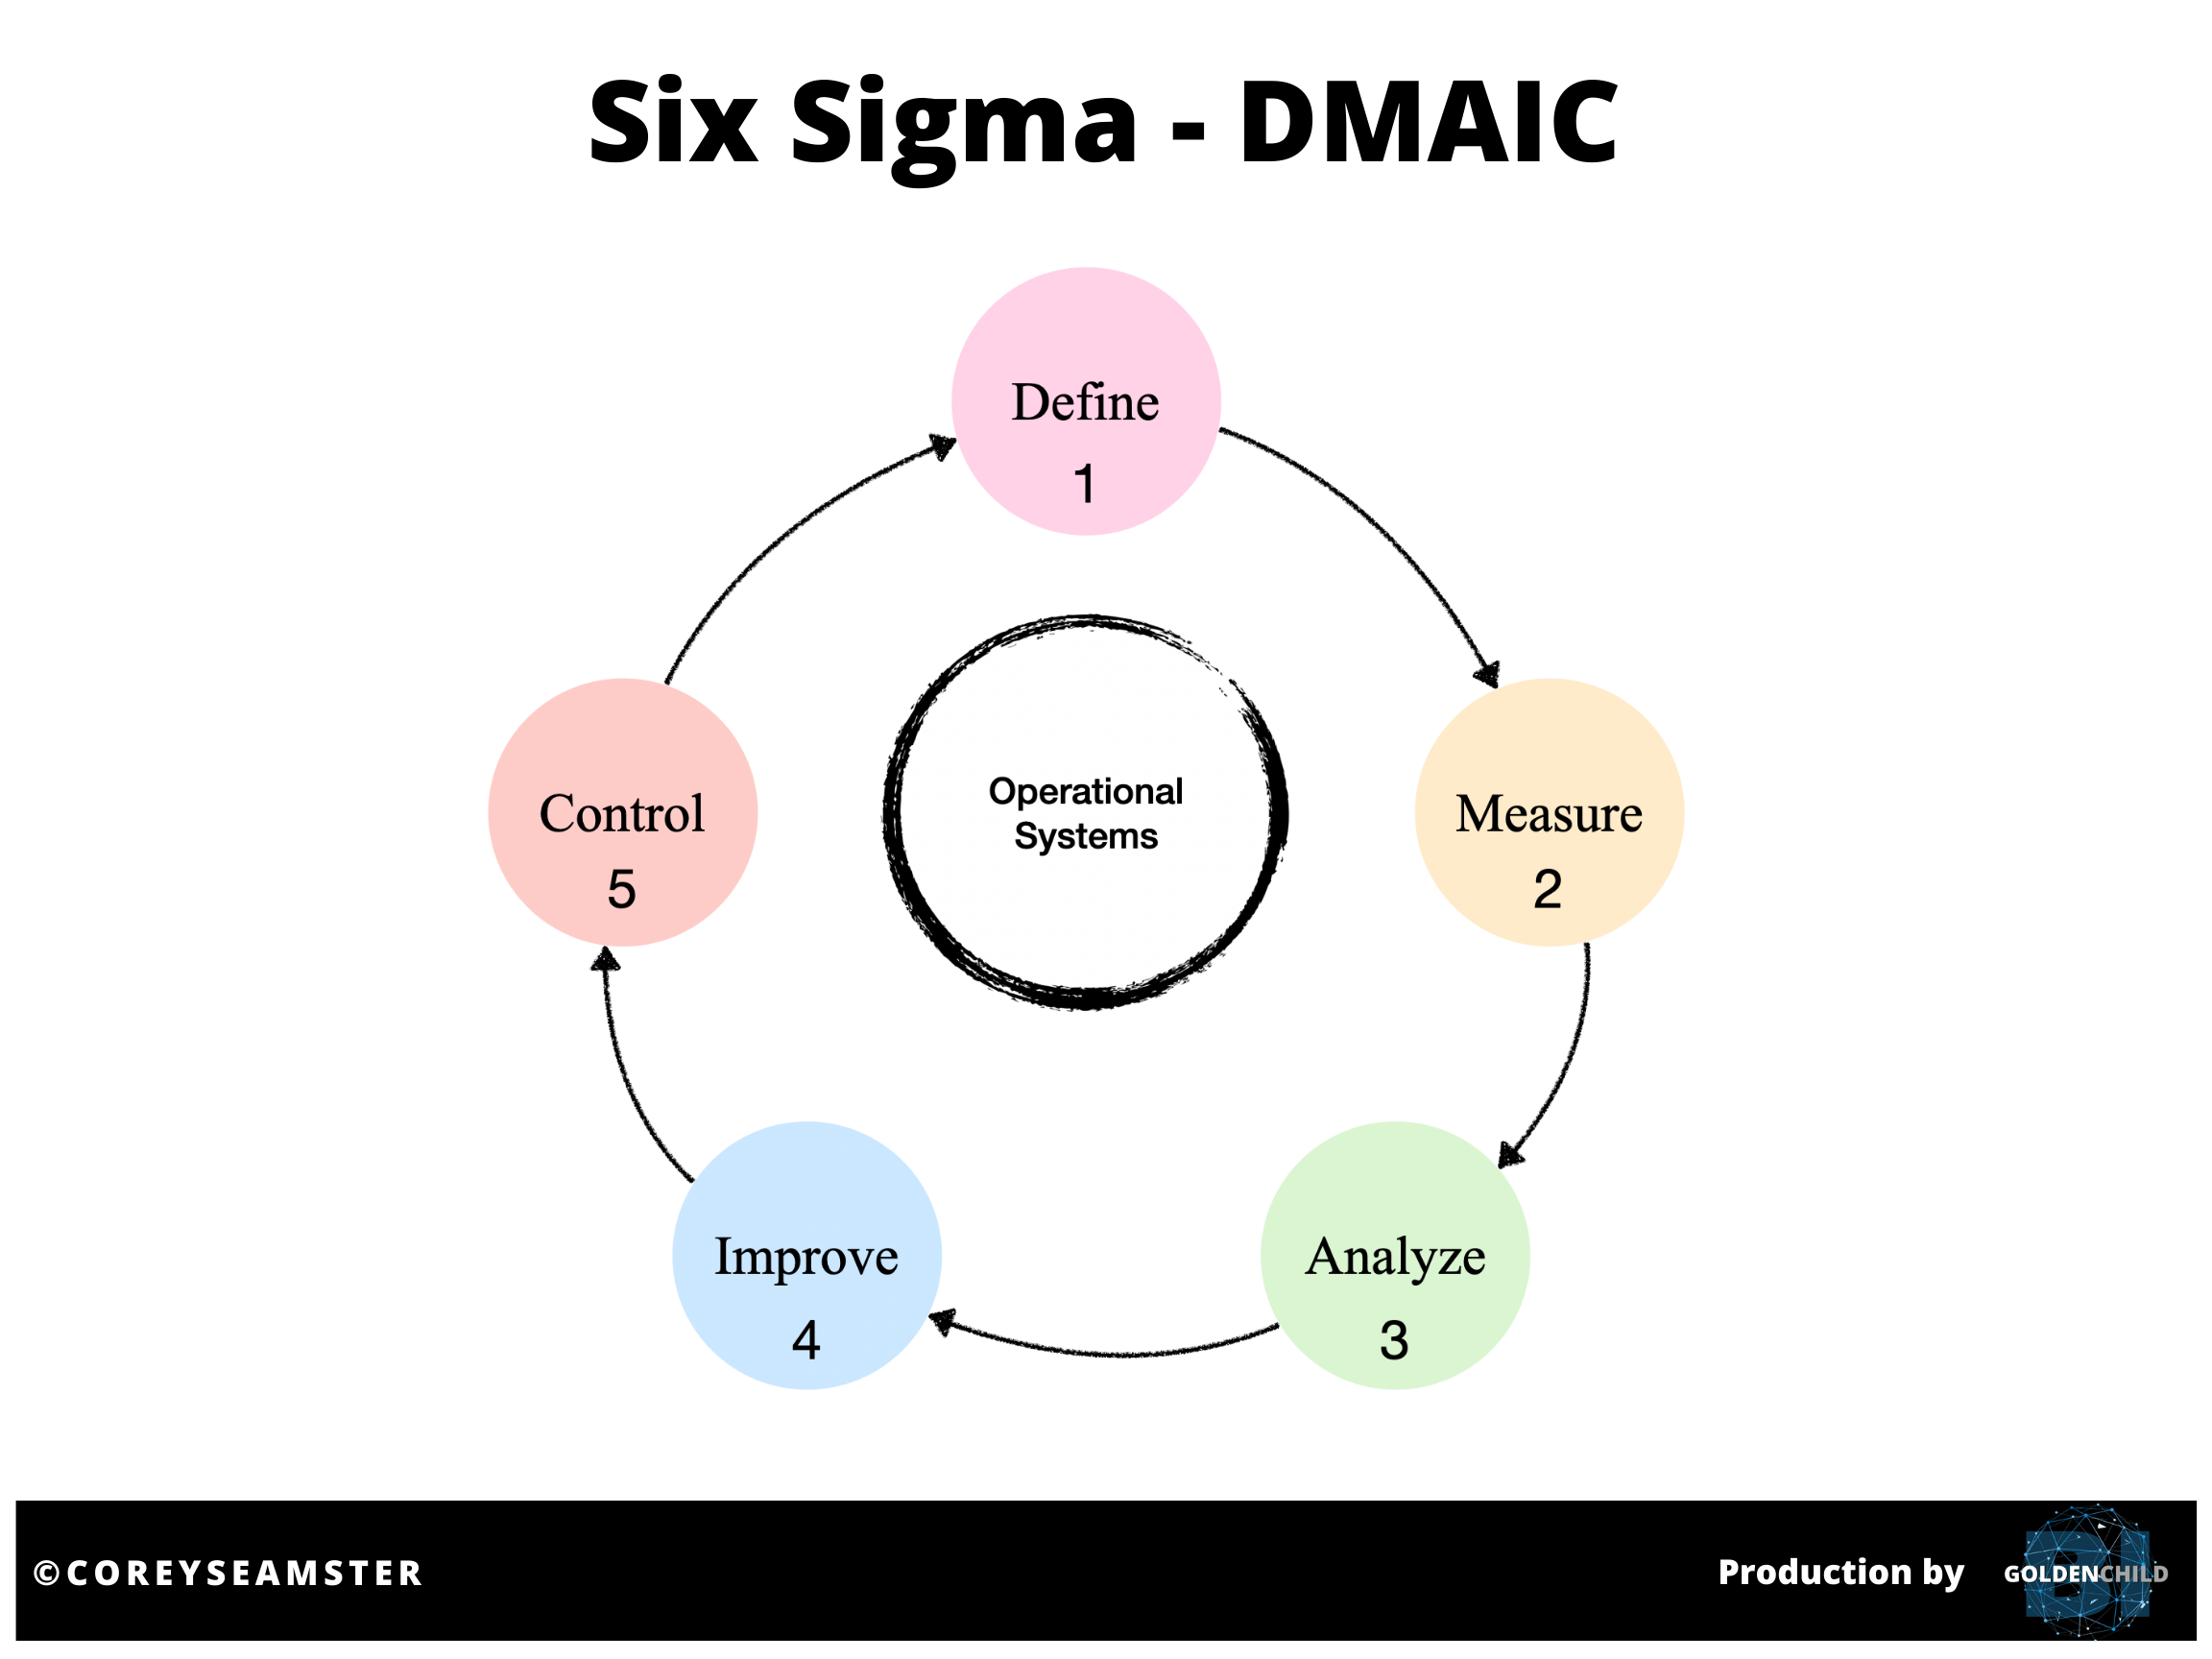 Source: Corey Seamster (2020) | Image: Six Sigma DMAIC cycle (Black, 2011)